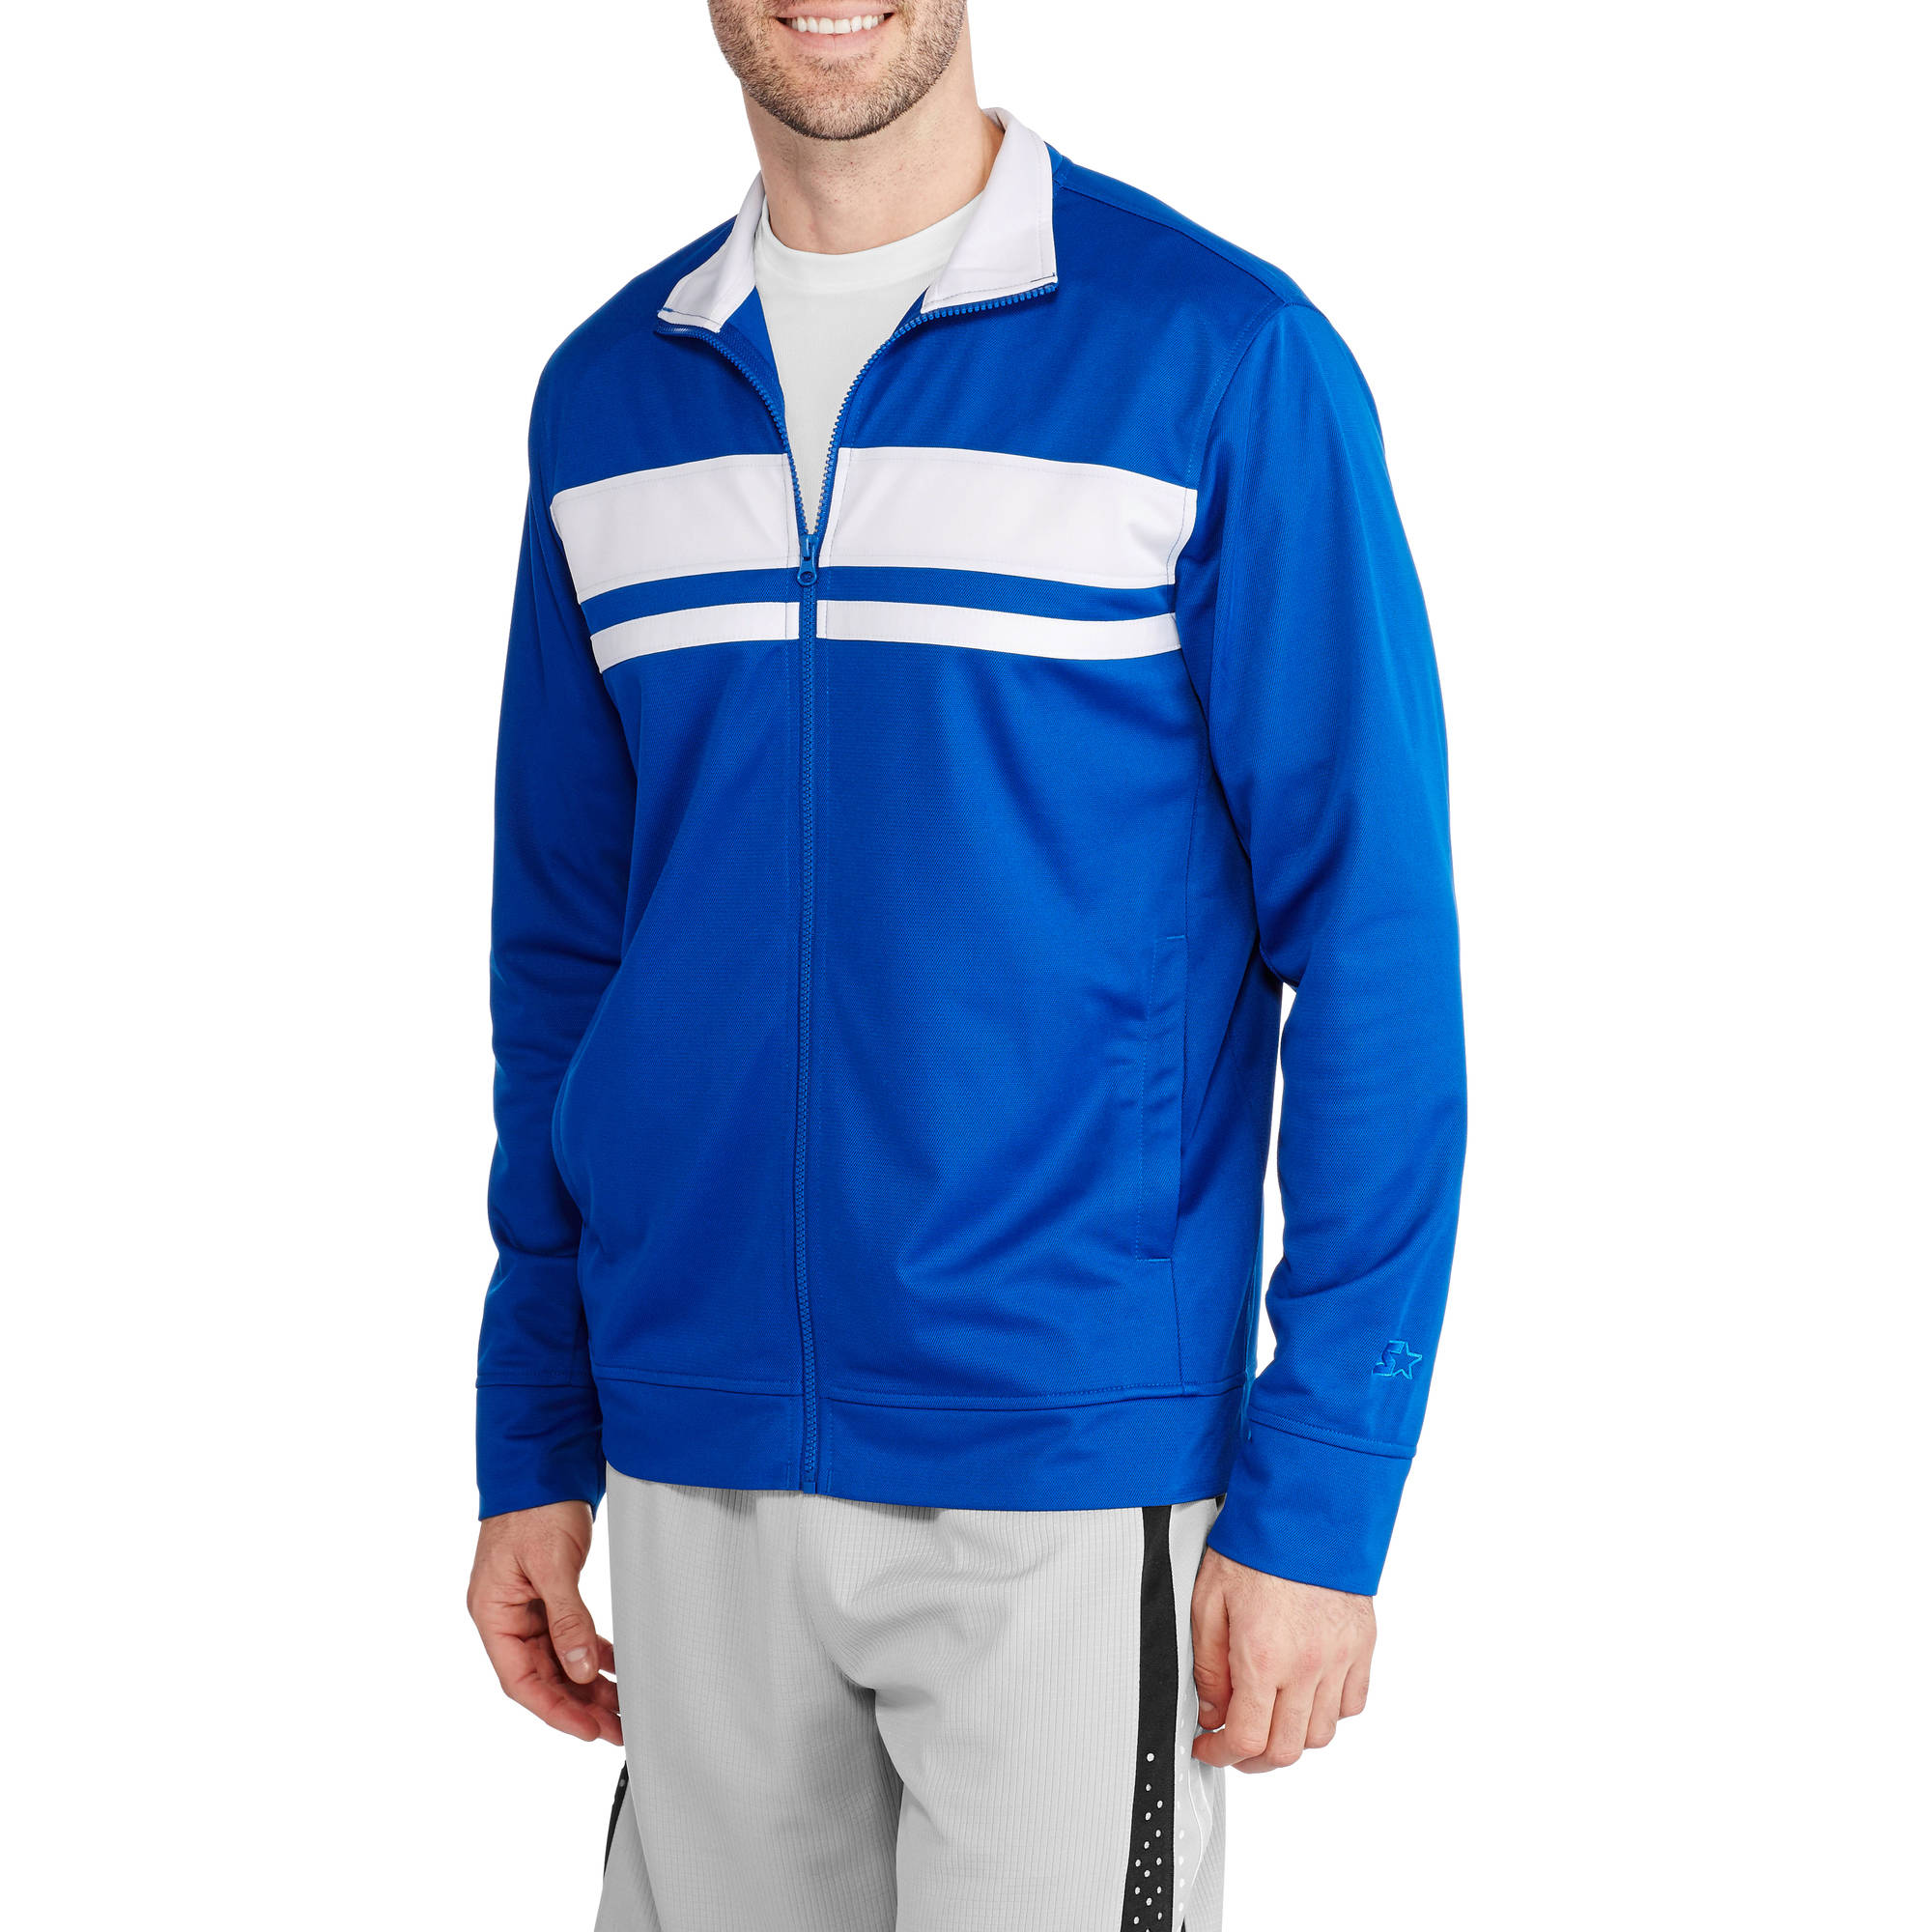 Starter Men's Performance Track Jacket